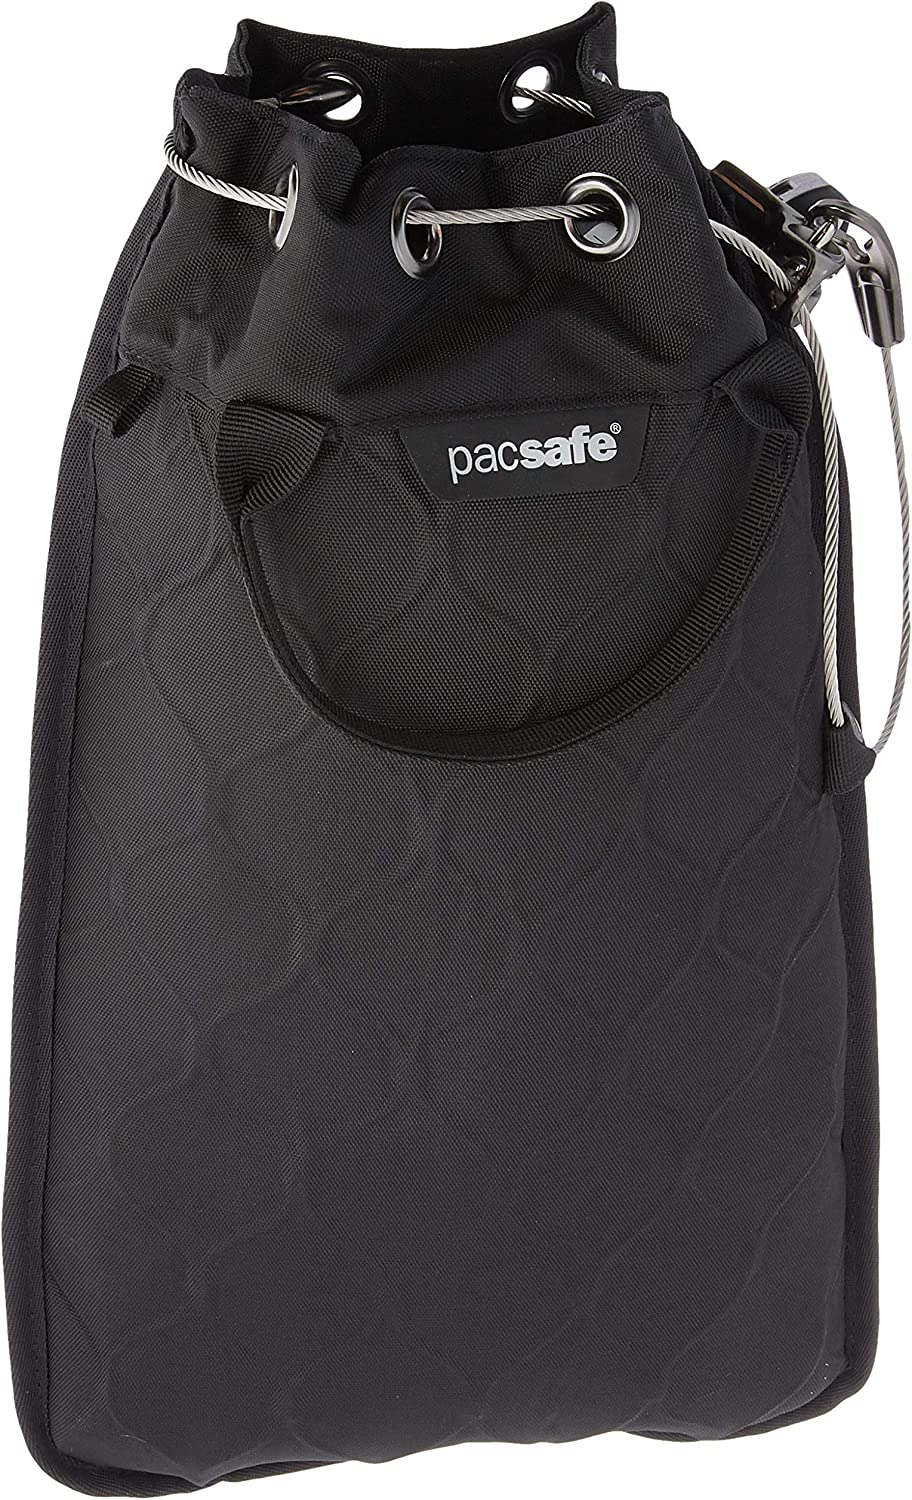 | Pacsafe Travelsafe GII Portable Safe | Backpacks